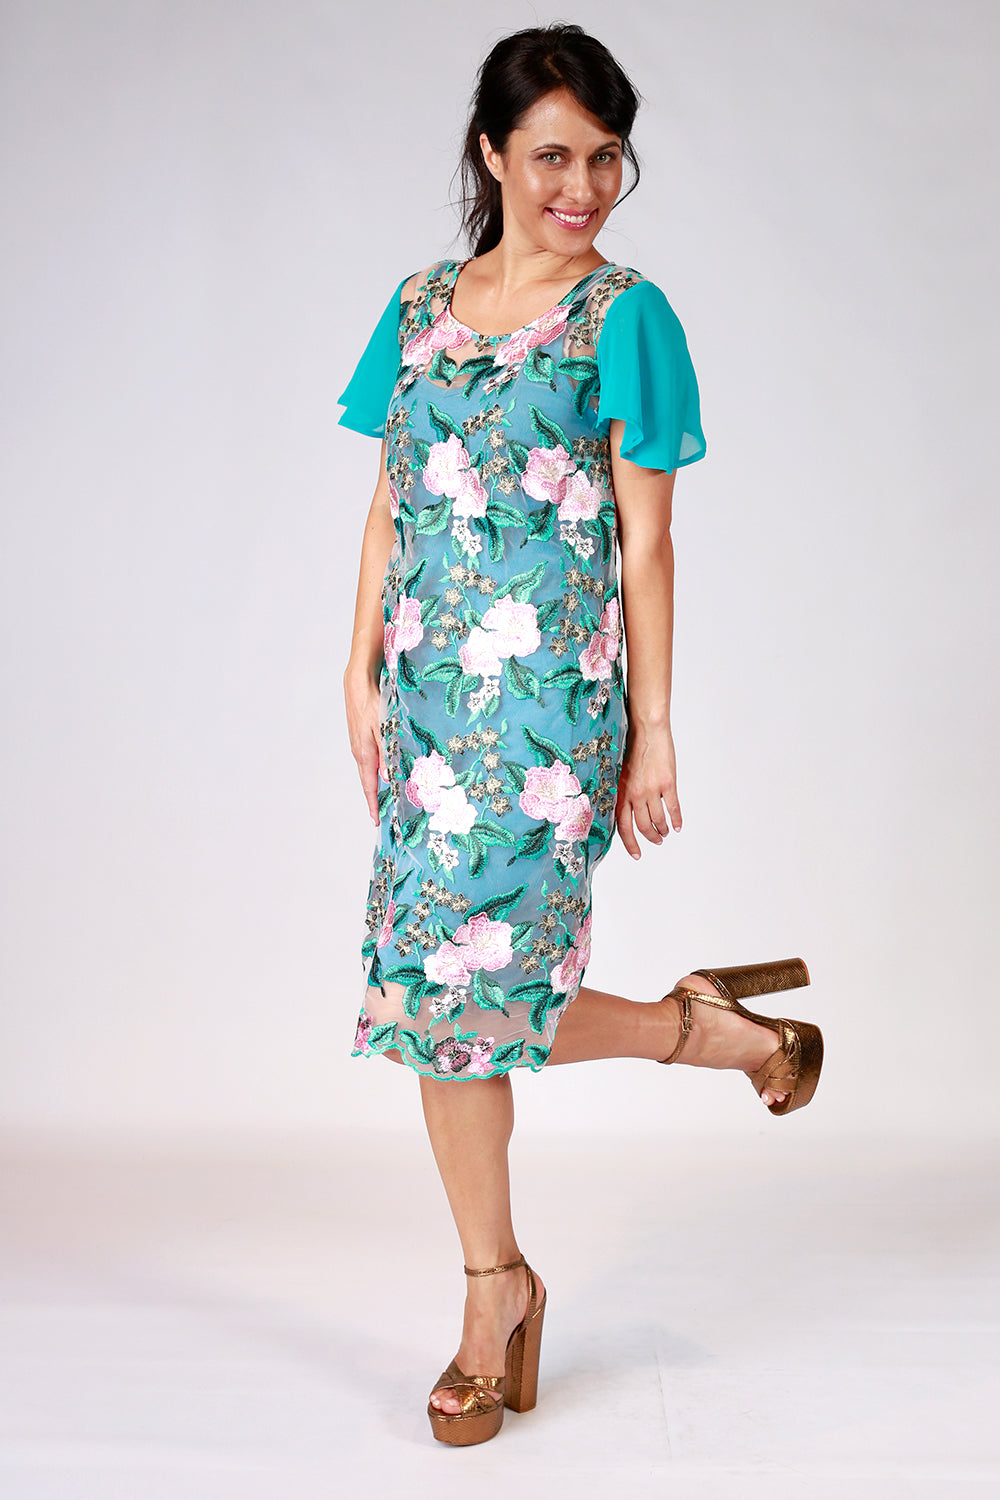 Pansy Pond Dress - SALE